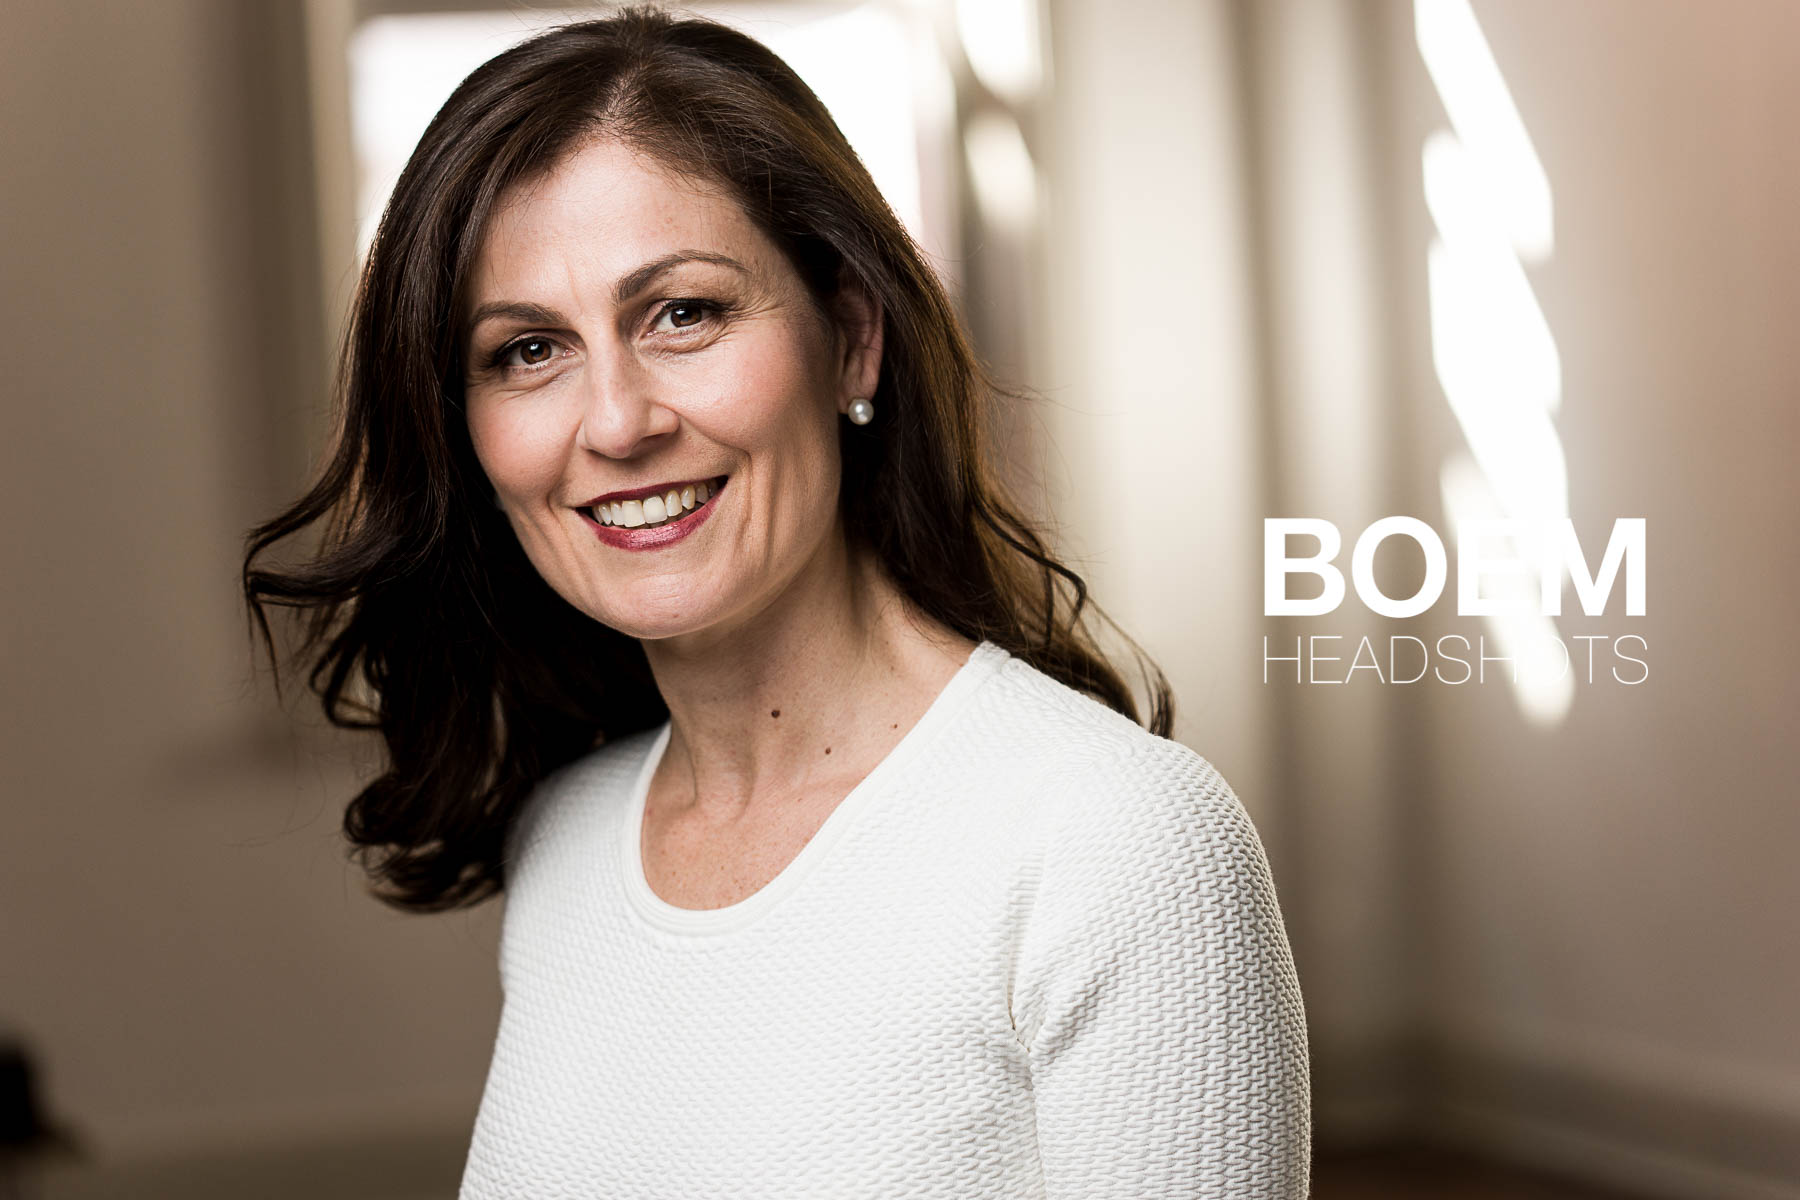 Joanna is a board member, and high level executive here in Adelaide who was in need of a few super nice headshot images for her various positions and networks. We spent an hour together shooting and i'm very happy with the the stunning headshots. here is a sneak peek.